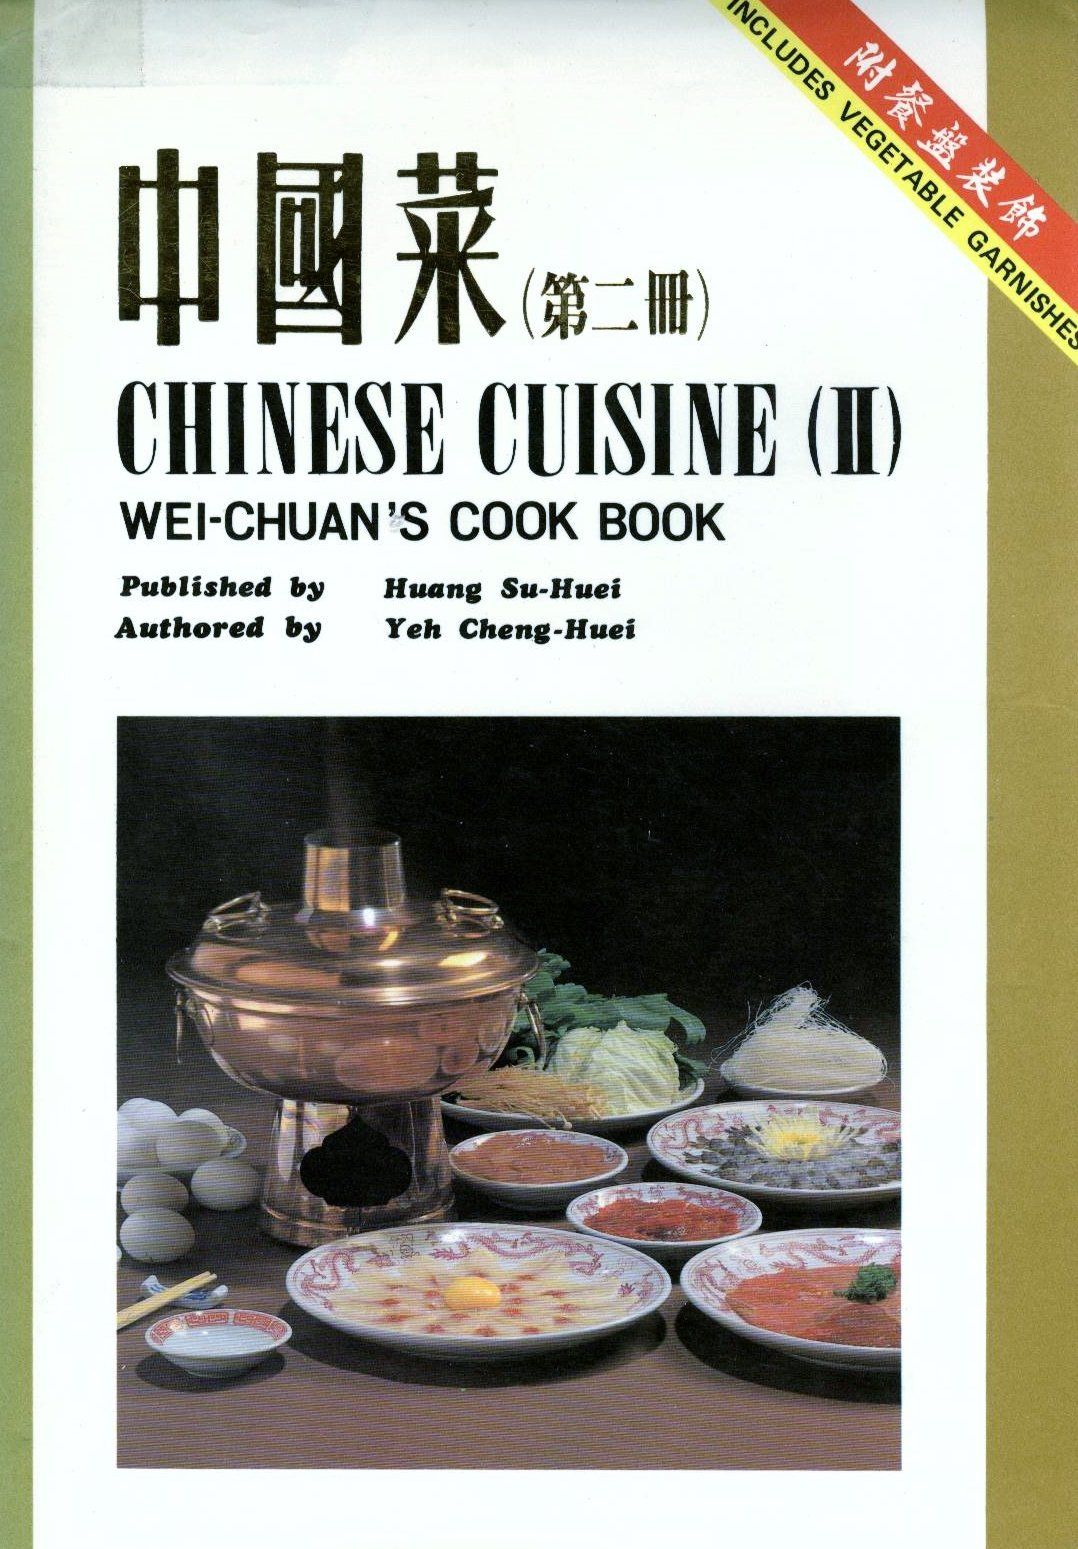 Chinese cuisine 2 wei chuans cook book english and mandarin chinese cuisine 2 wei chuans cook book english and mandarin chinese edition yeh cheng huei 9780941676052 amazon books forumfinder Images